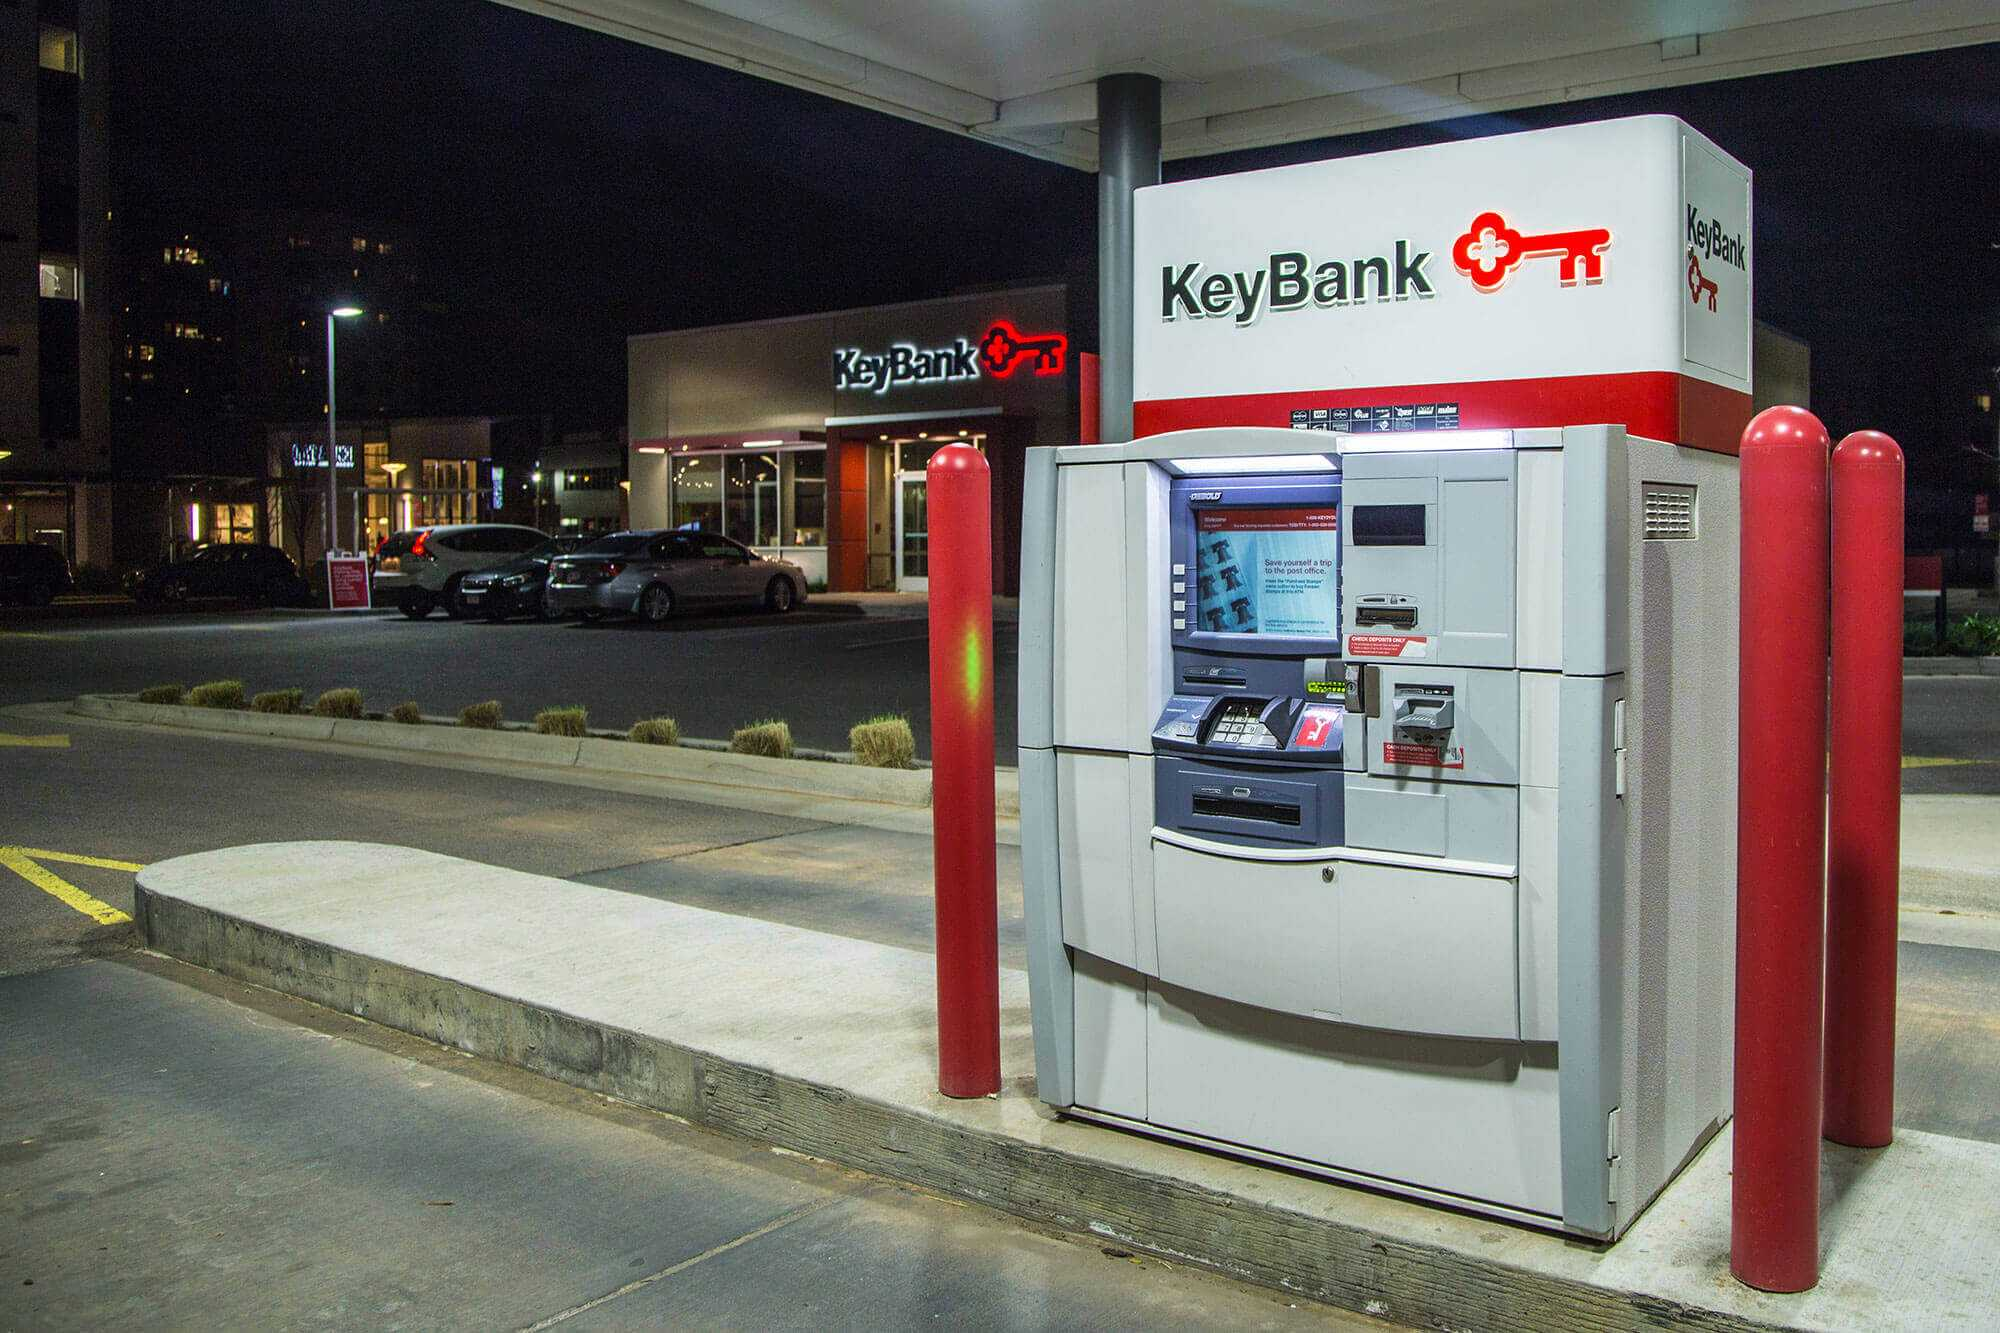 Transforming newly acquired locations into KeyBank brand